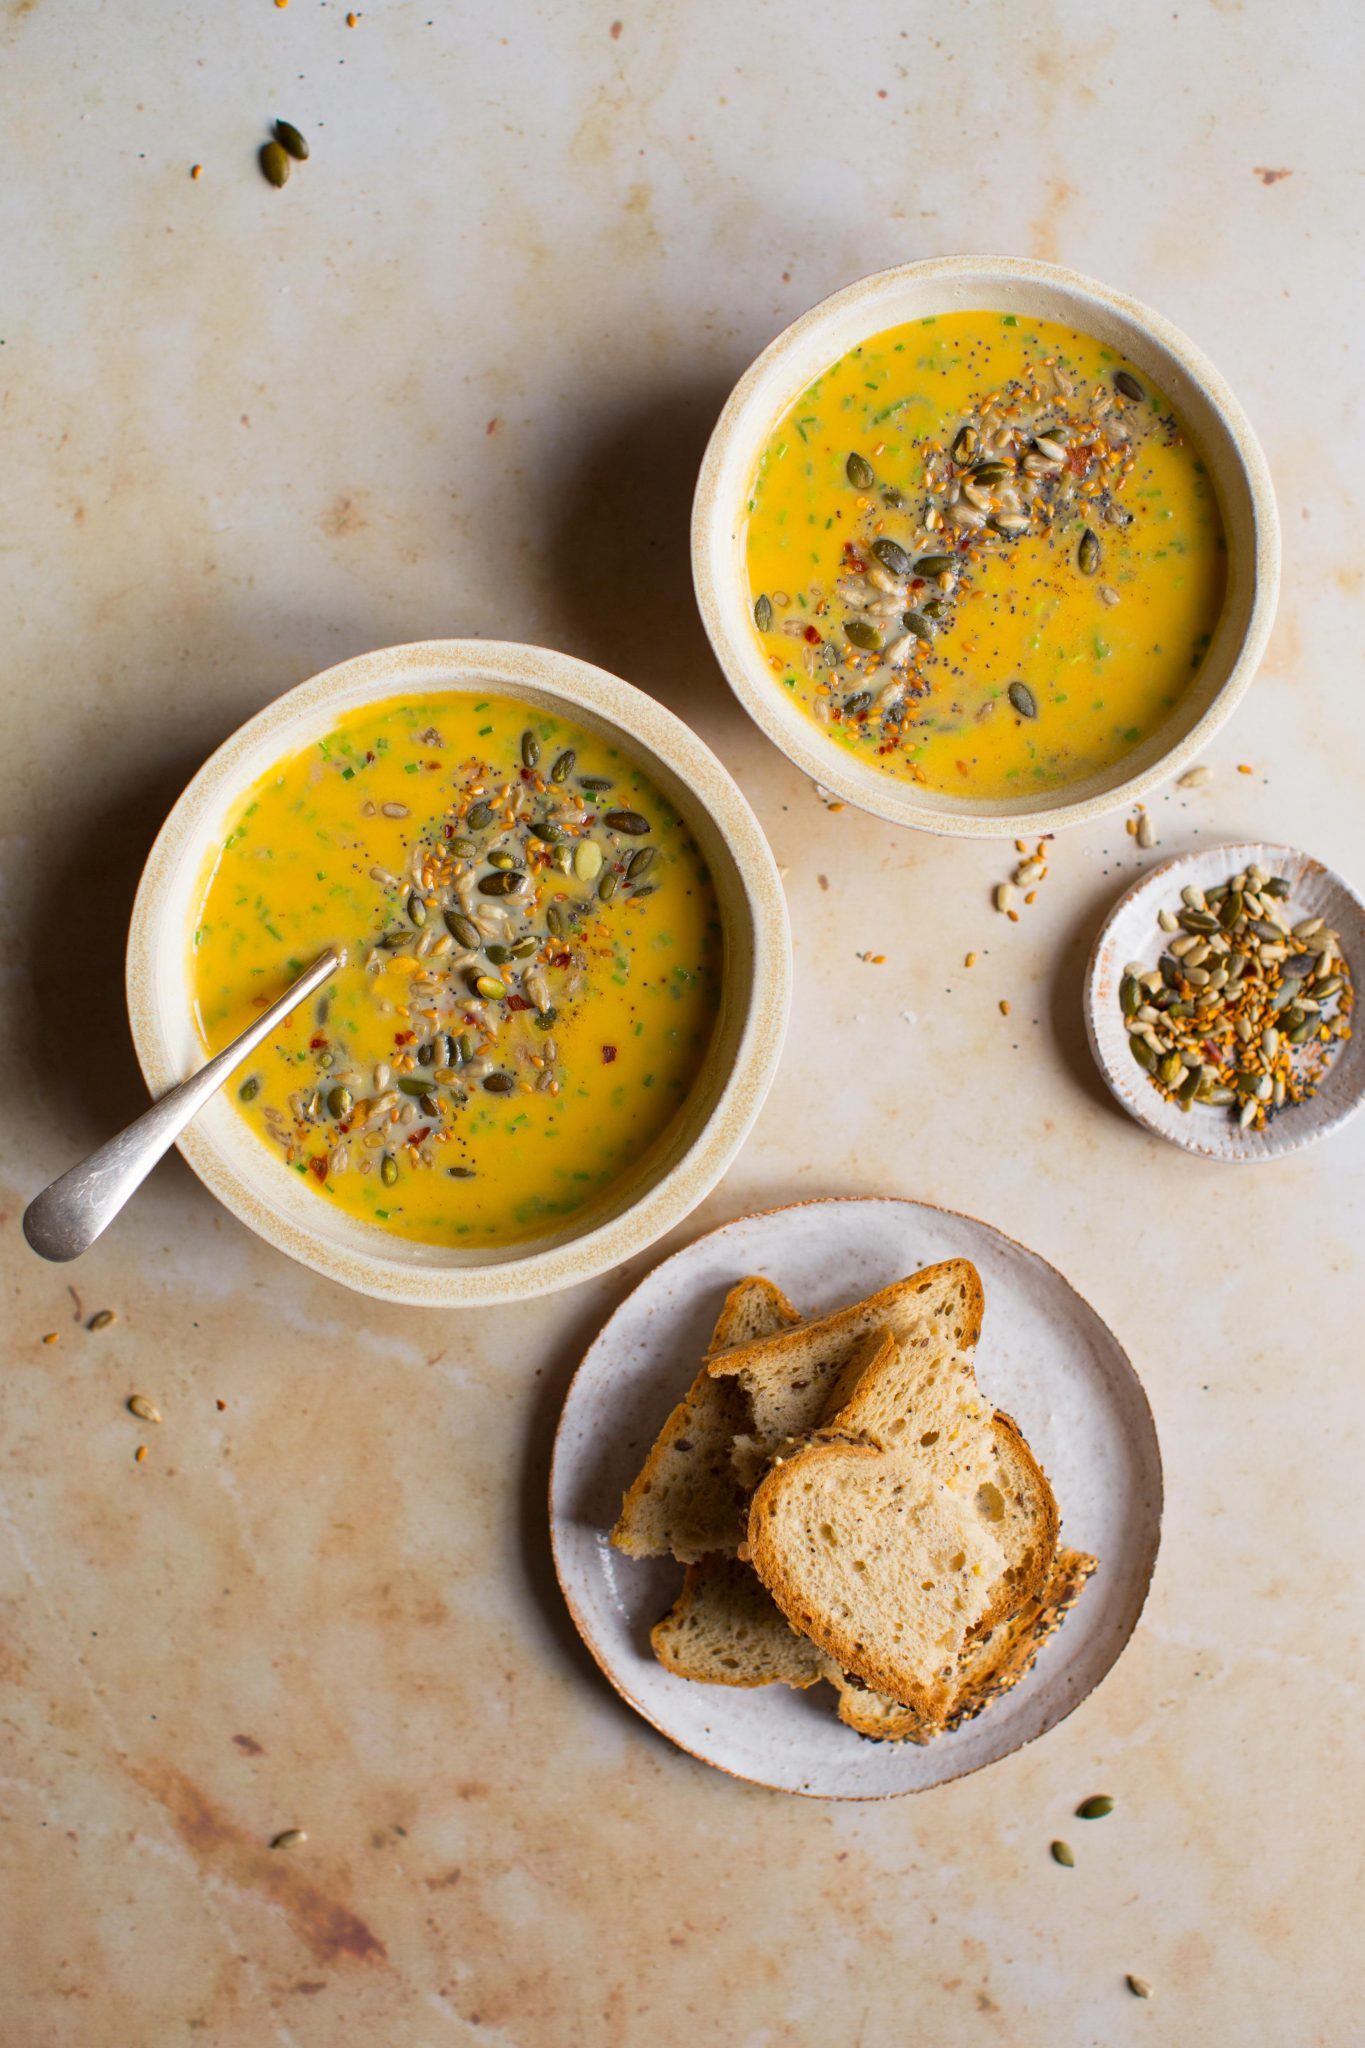 Butternut squash soup with toasted seeds served with Promise Gluten Free brown rolls